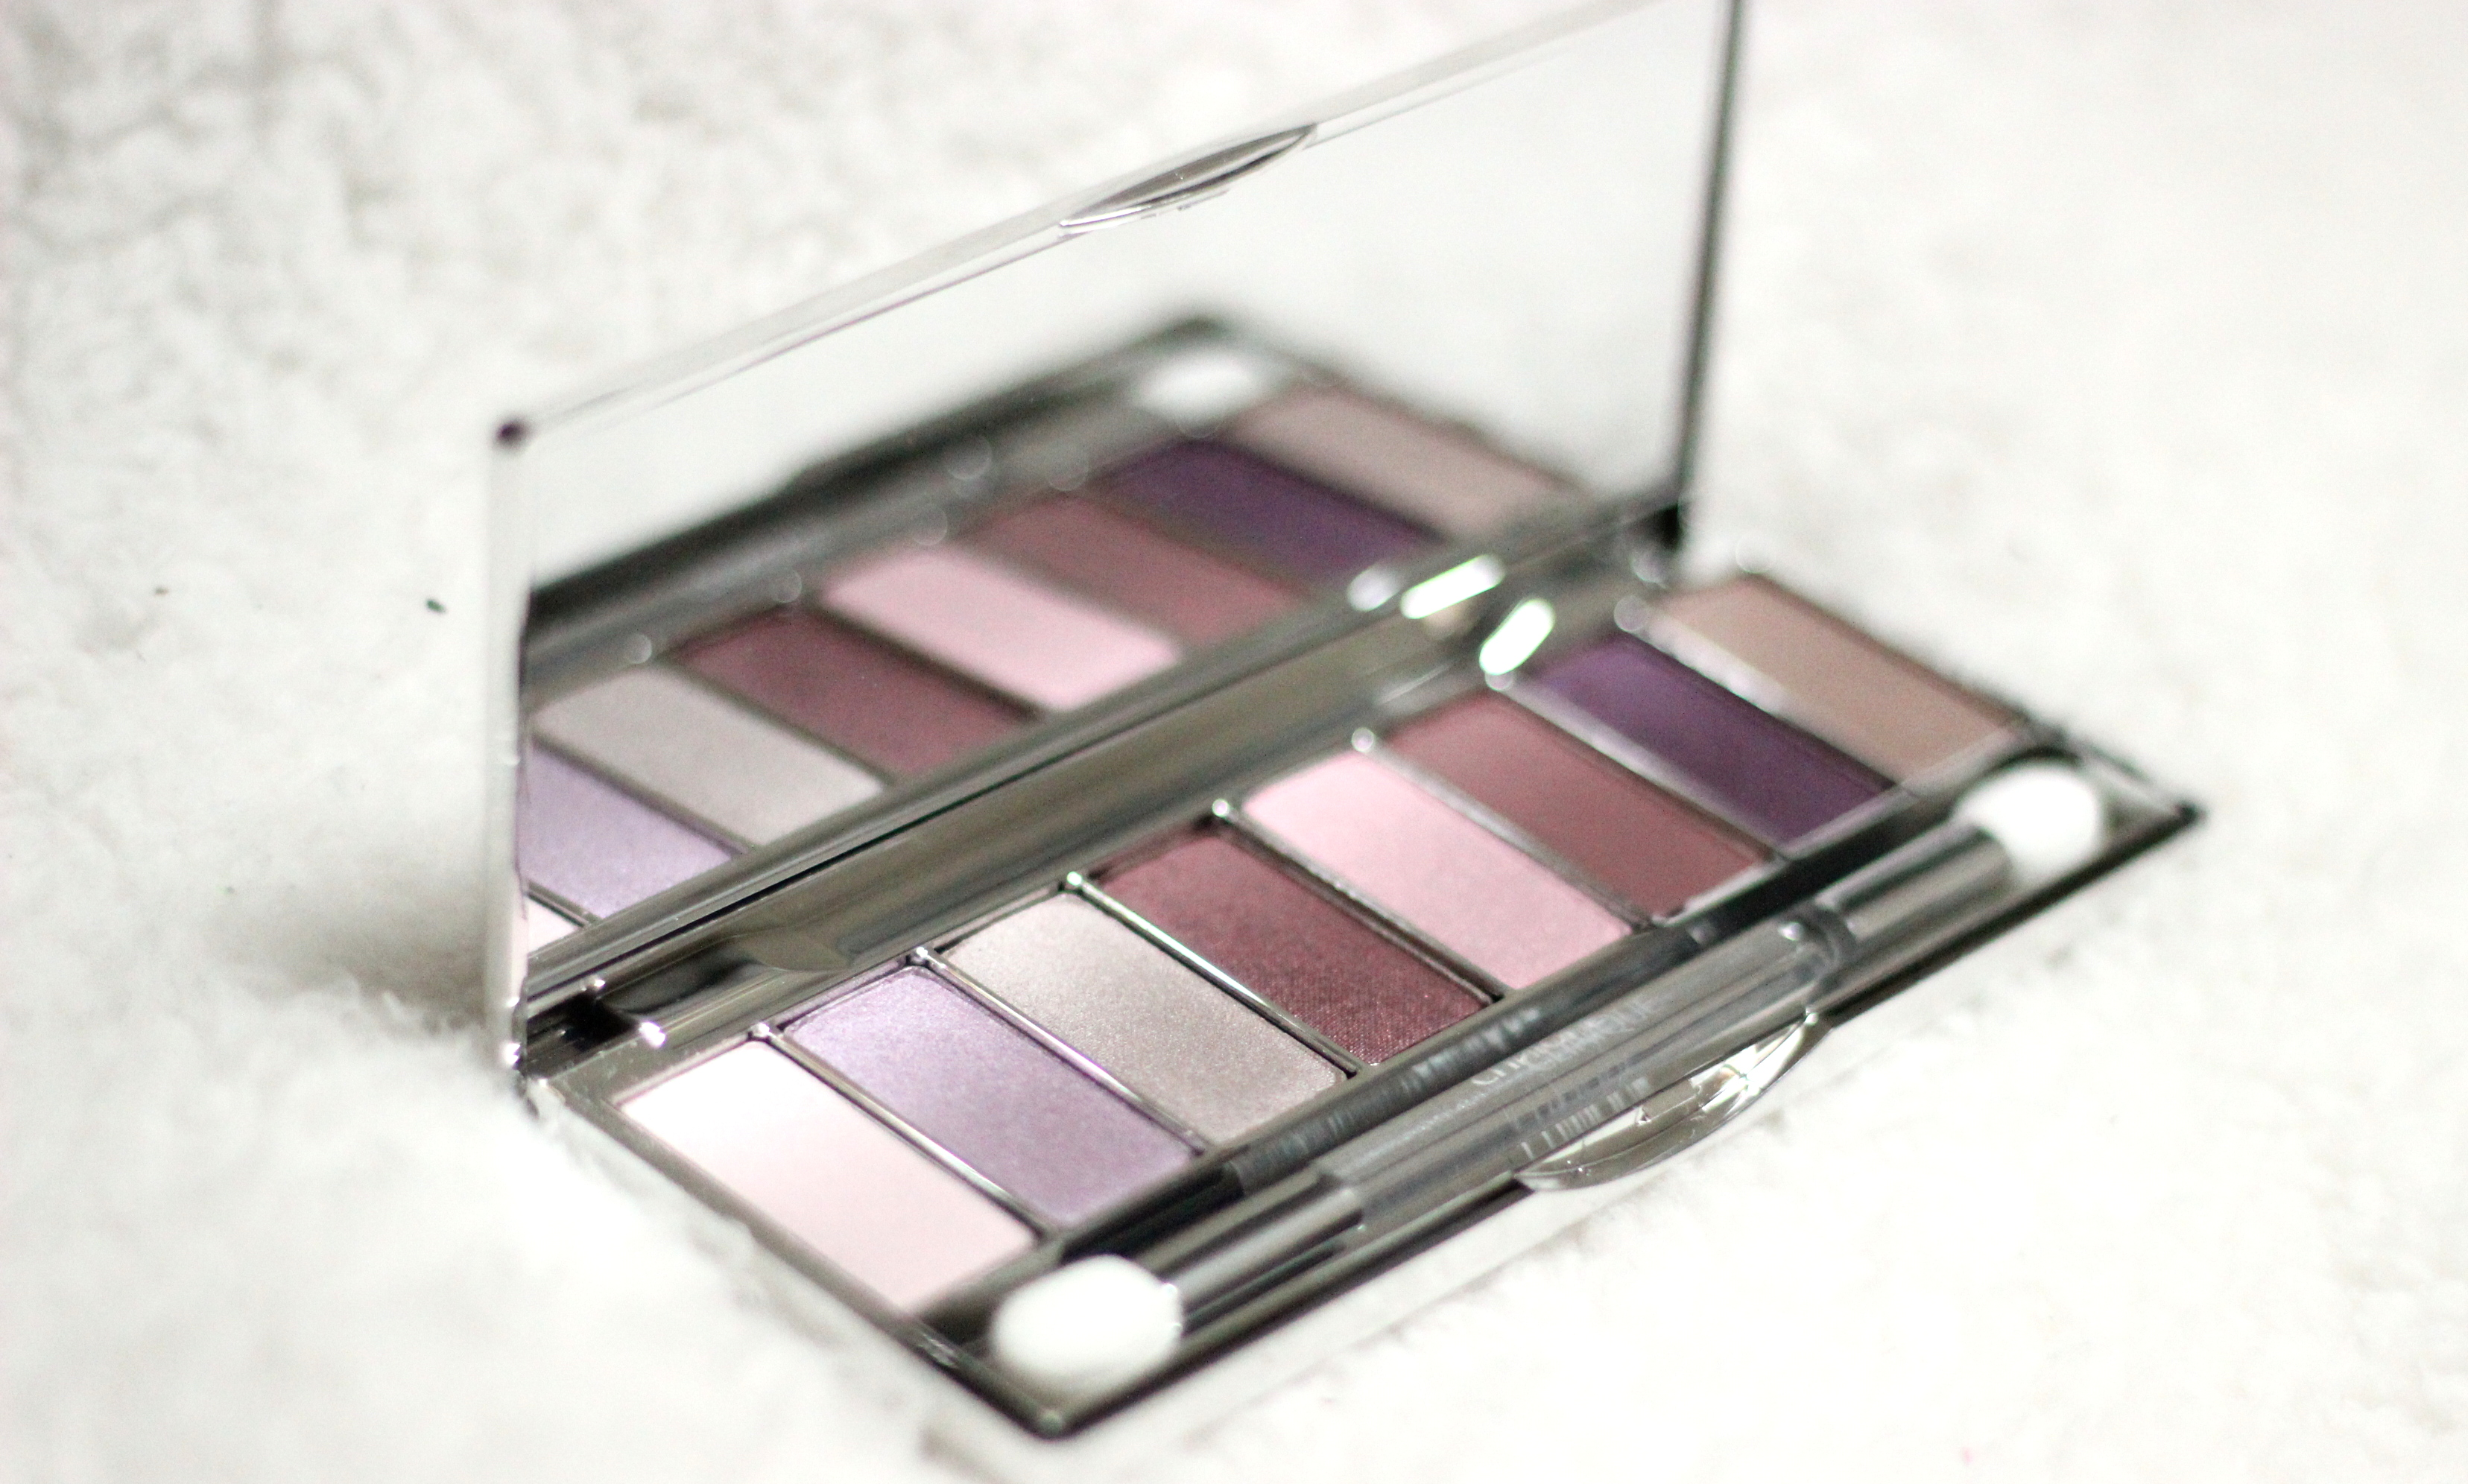 Clinique-palette-review (4)